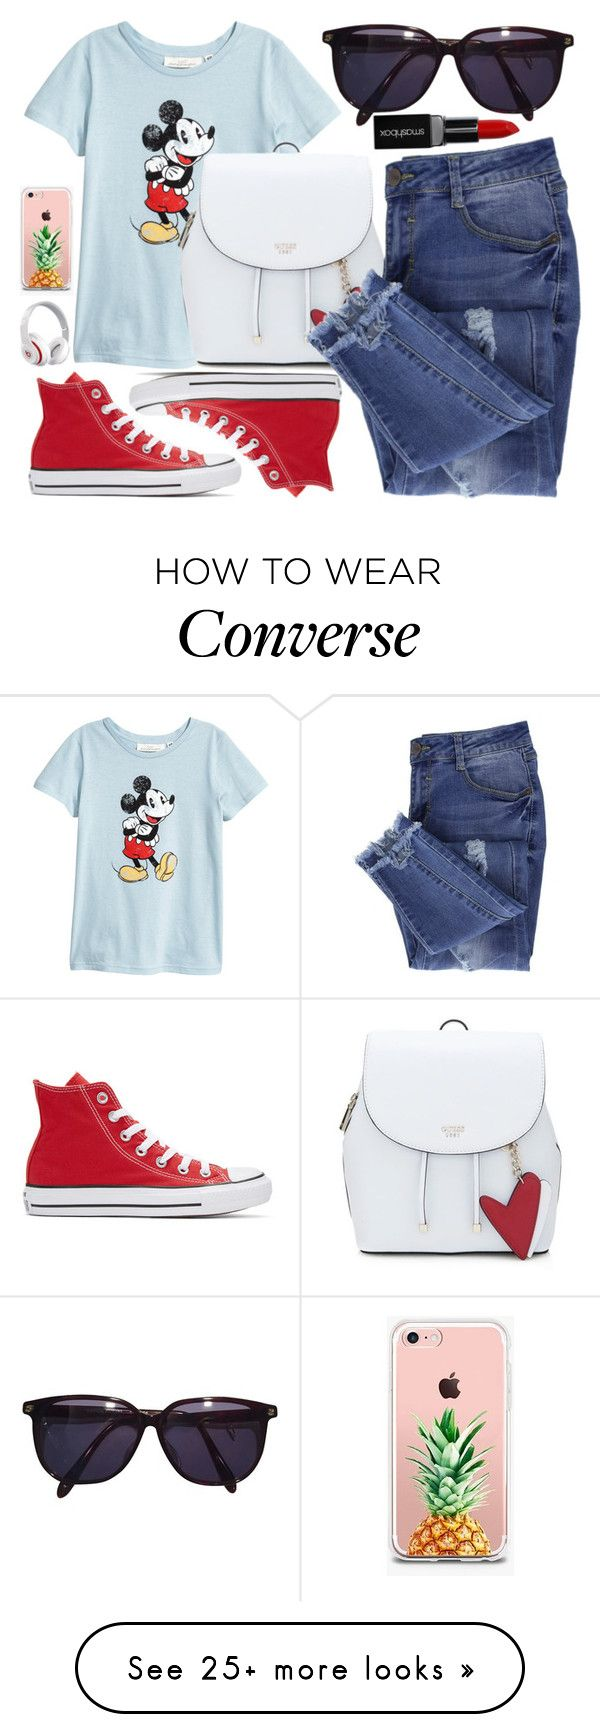 """""""Don't Believe Me Just Watch"""" by basmahahmed on Polyvore featuring Essie, Converse, Beats by Dr. Dre, The Casery, Sonia Rykiel and Smashbox"""